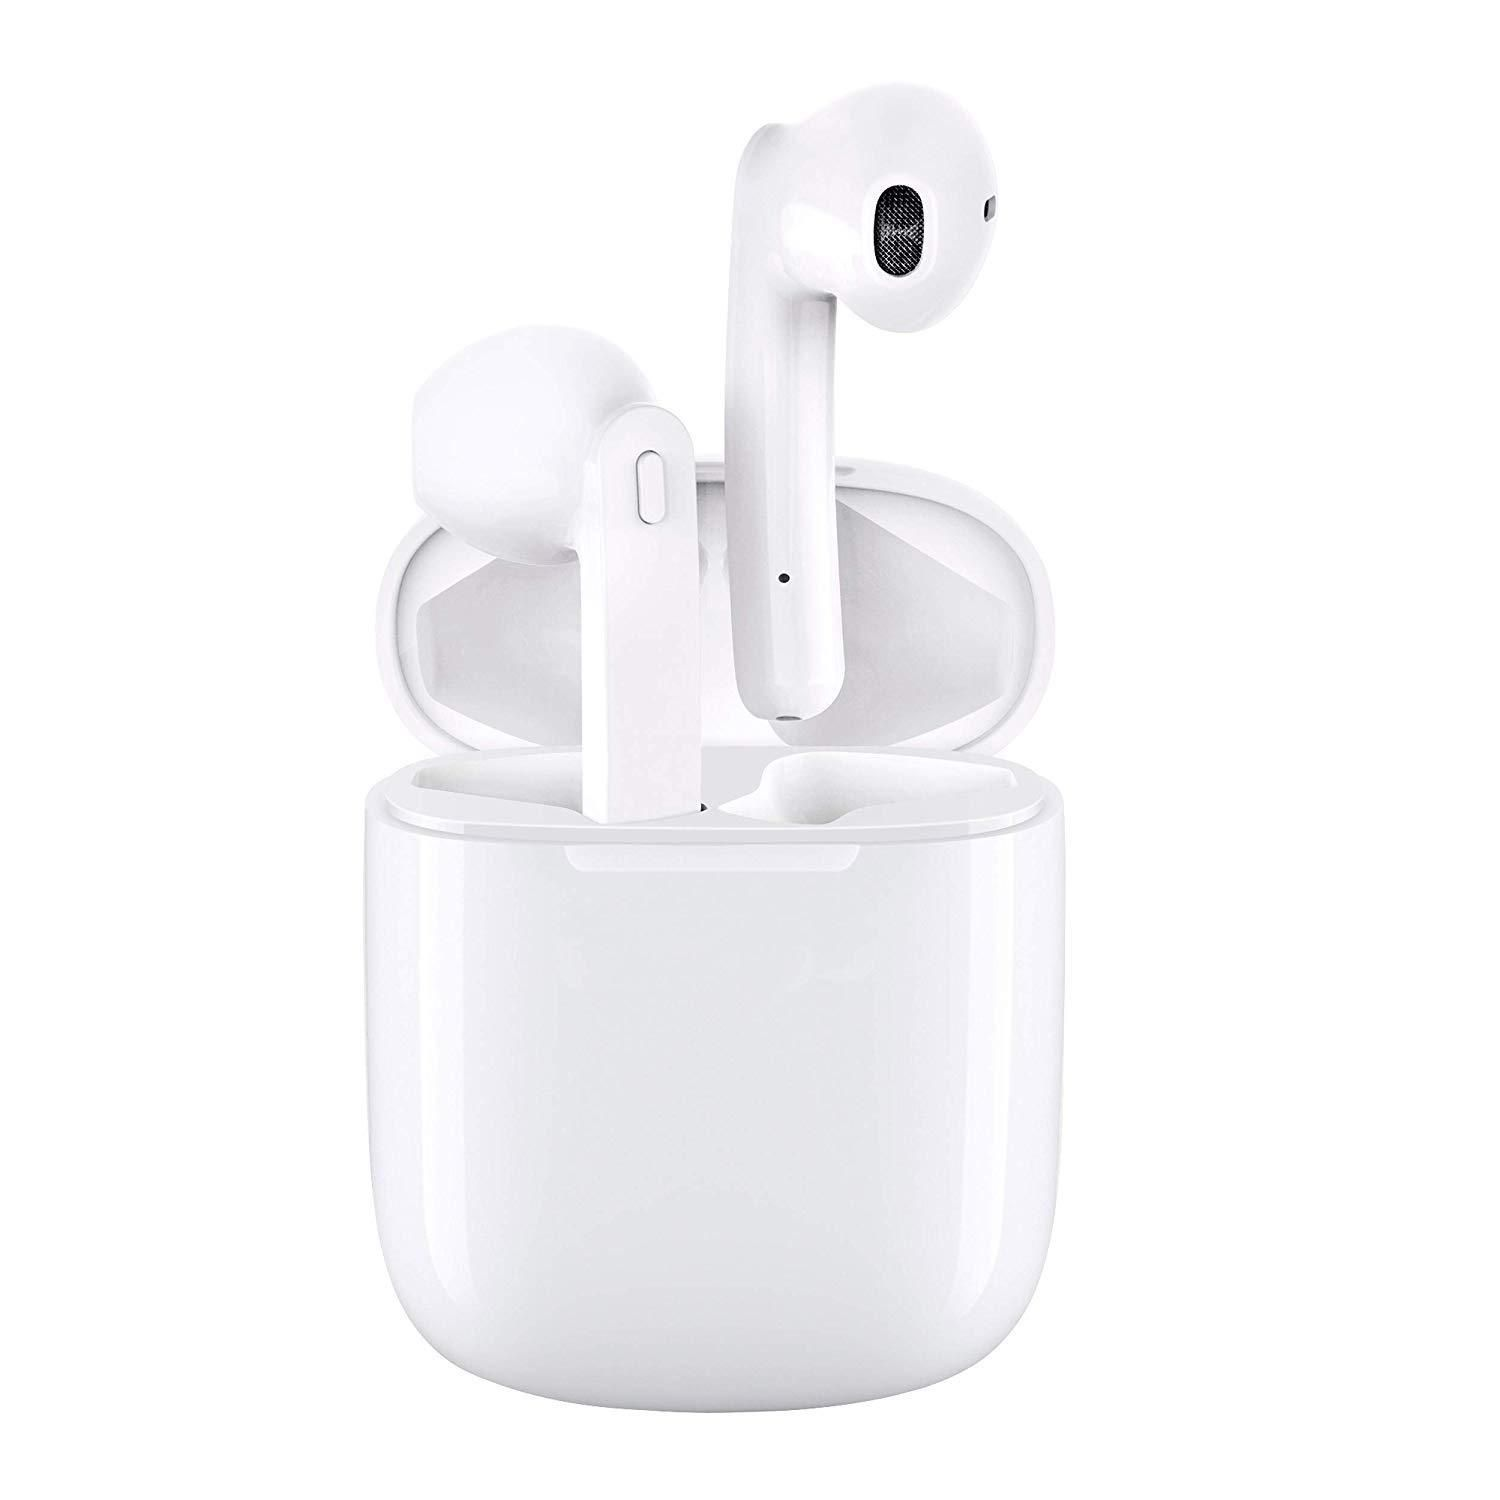 Wireless Earbuds Noise Canceling Sports 3d Stereo Headphones With 24 Hr Playtime Ipx6 Waterproof Pop Ups Auto Pairing Built In Binaural Mic Headset For And Wireless Earbuds Earbuds Stereo Headphones